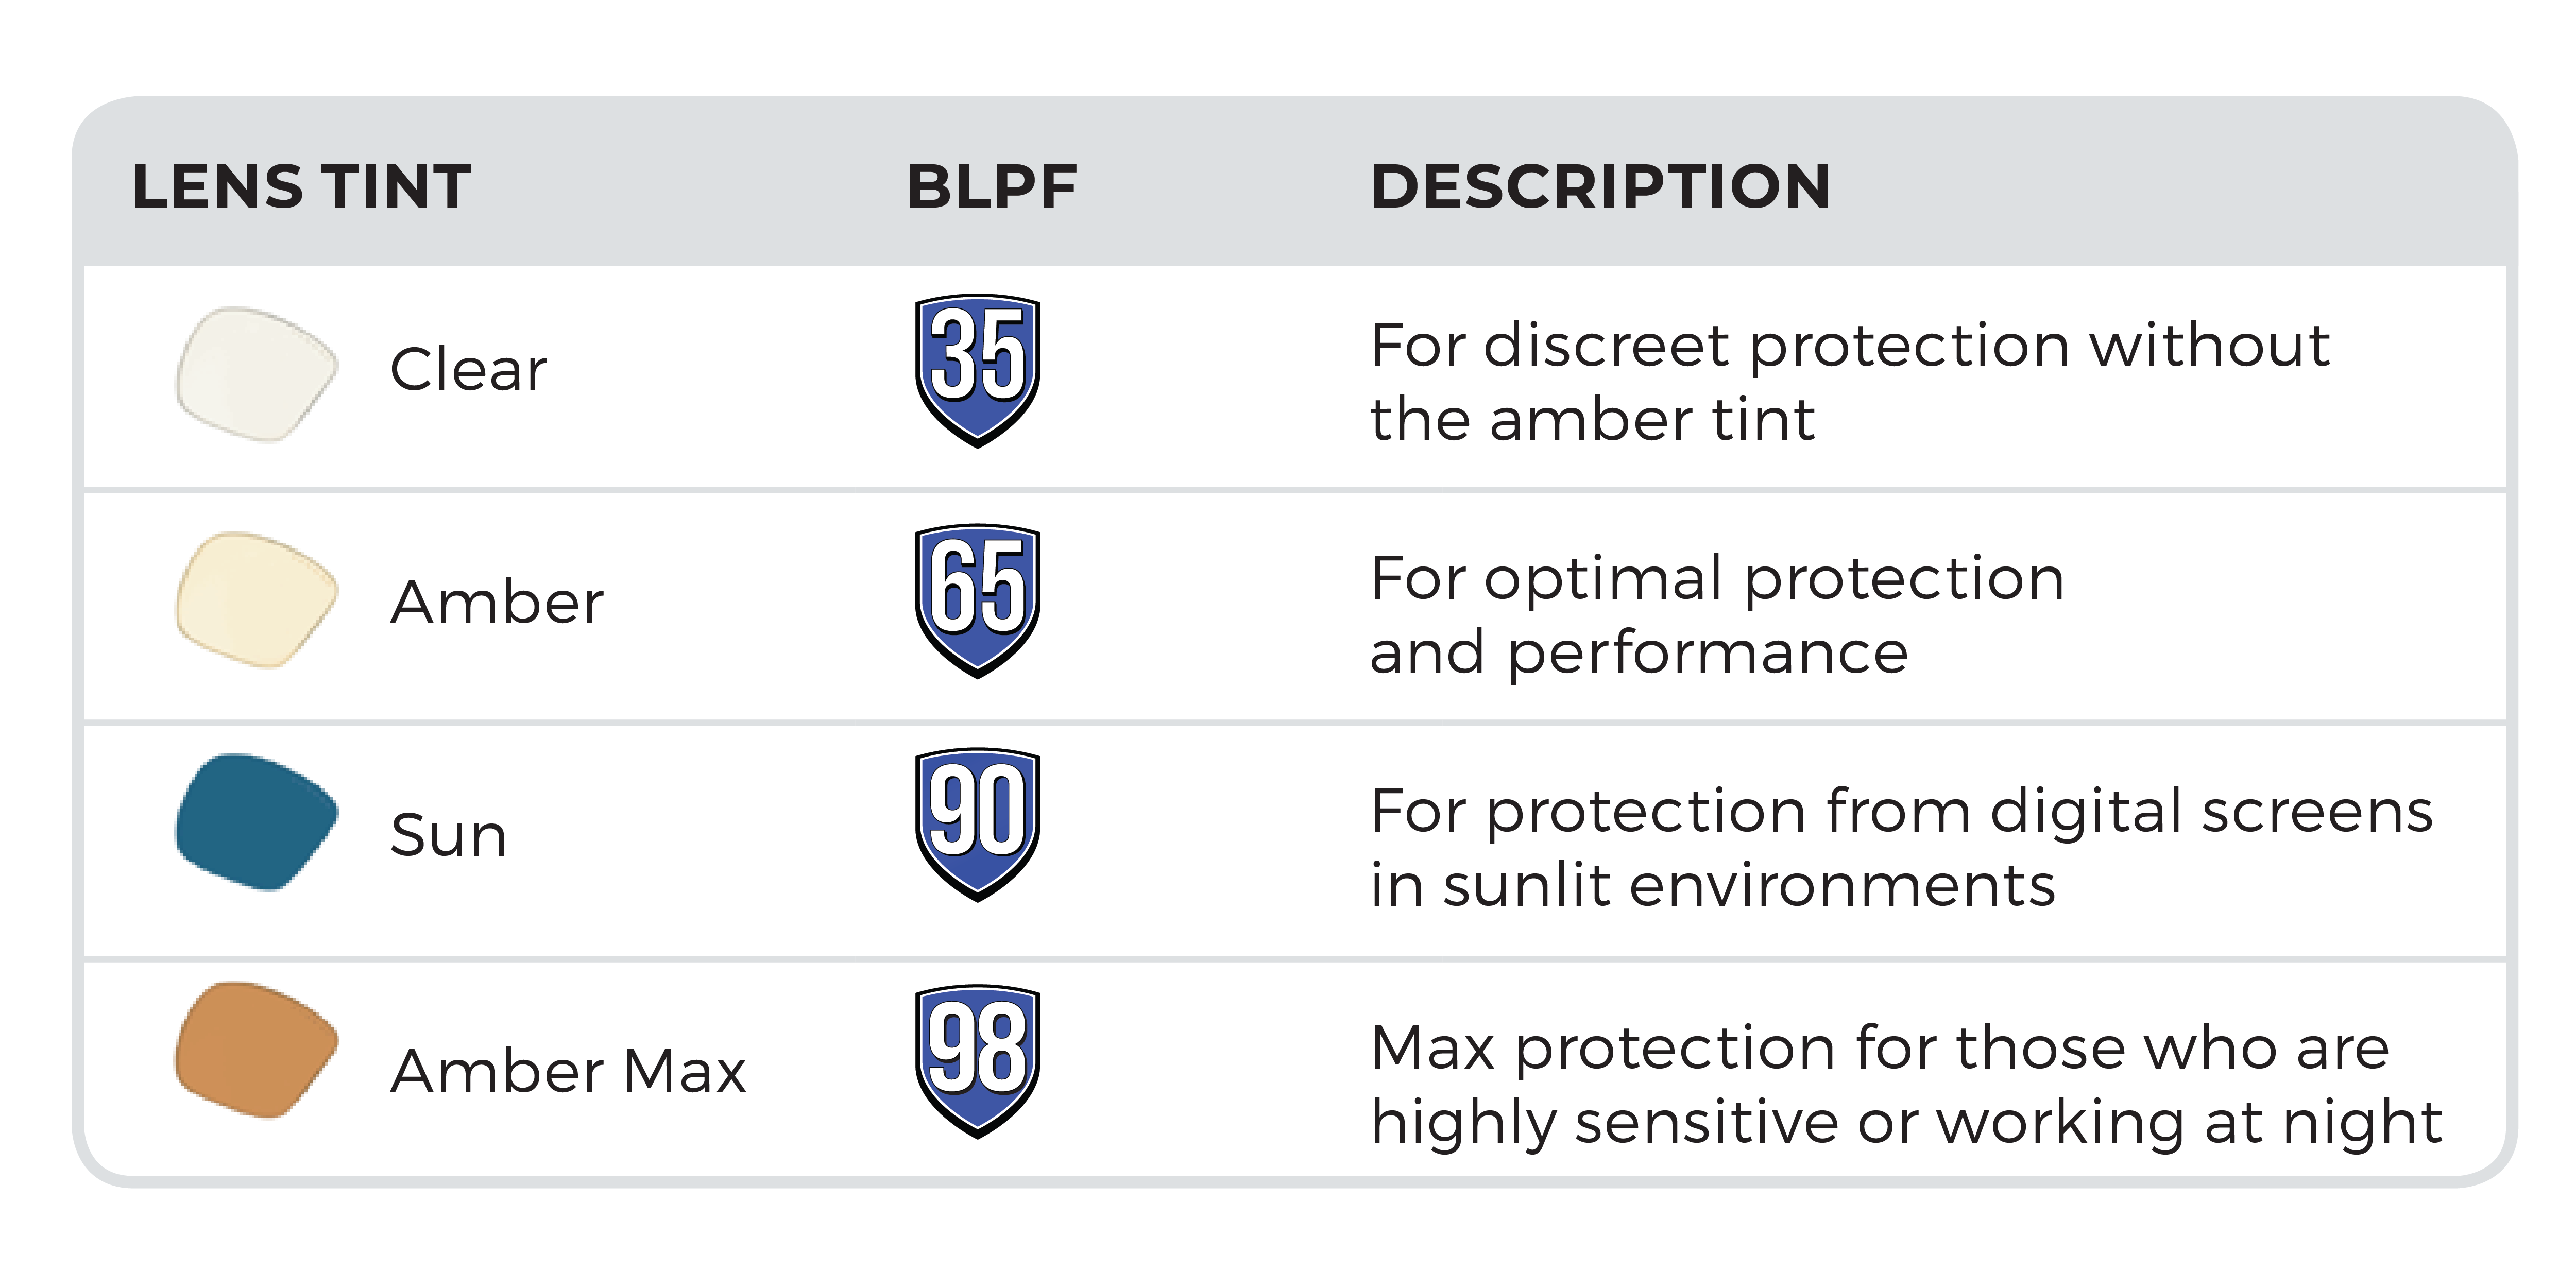 BLPF Logos 1200x600 2 - Which GUNNAR Lenses Are Right for Me?